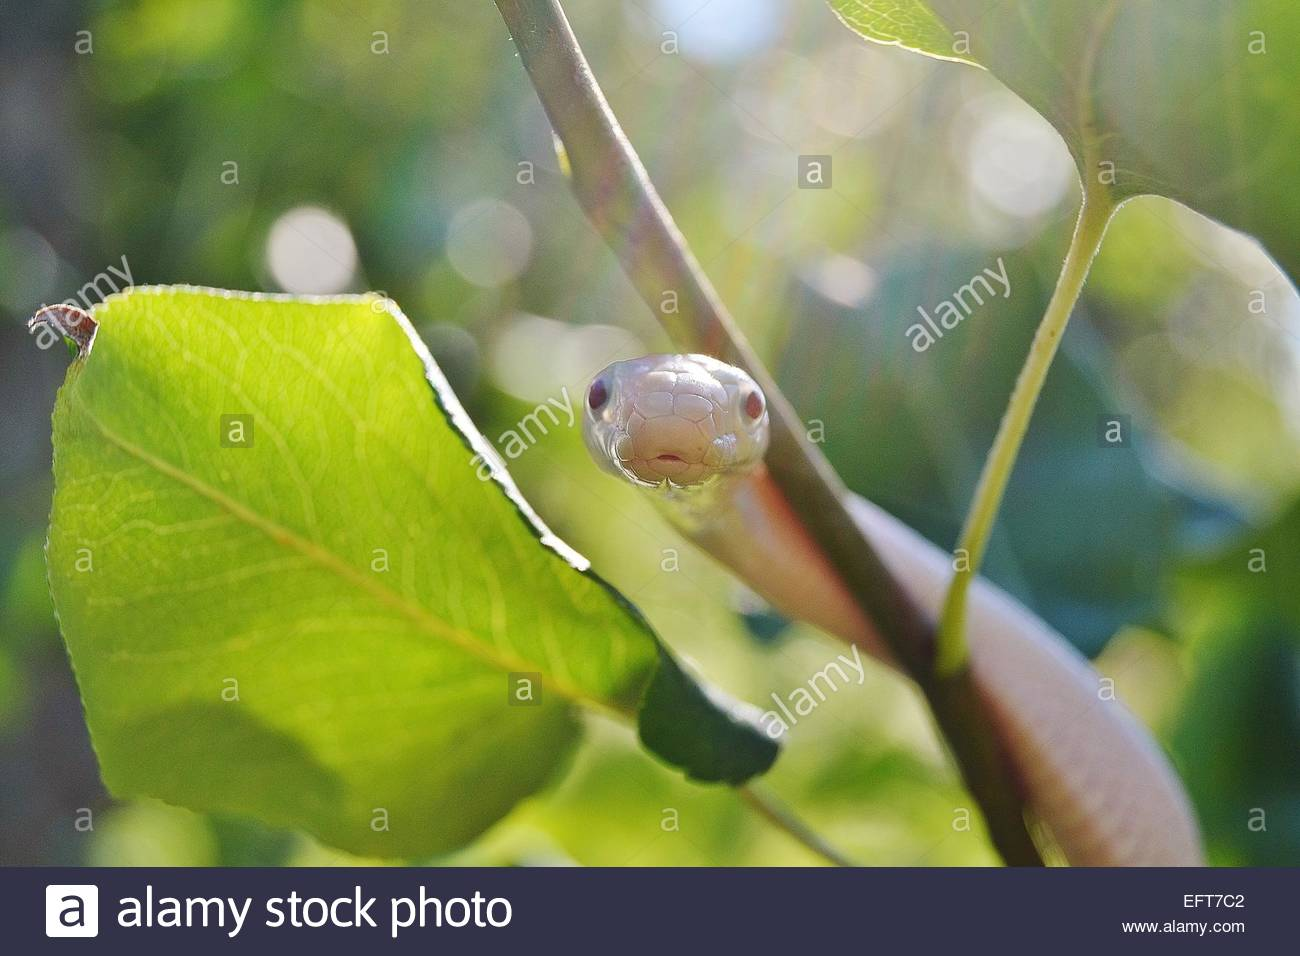 Close-up view of snake on branch Stock Photo